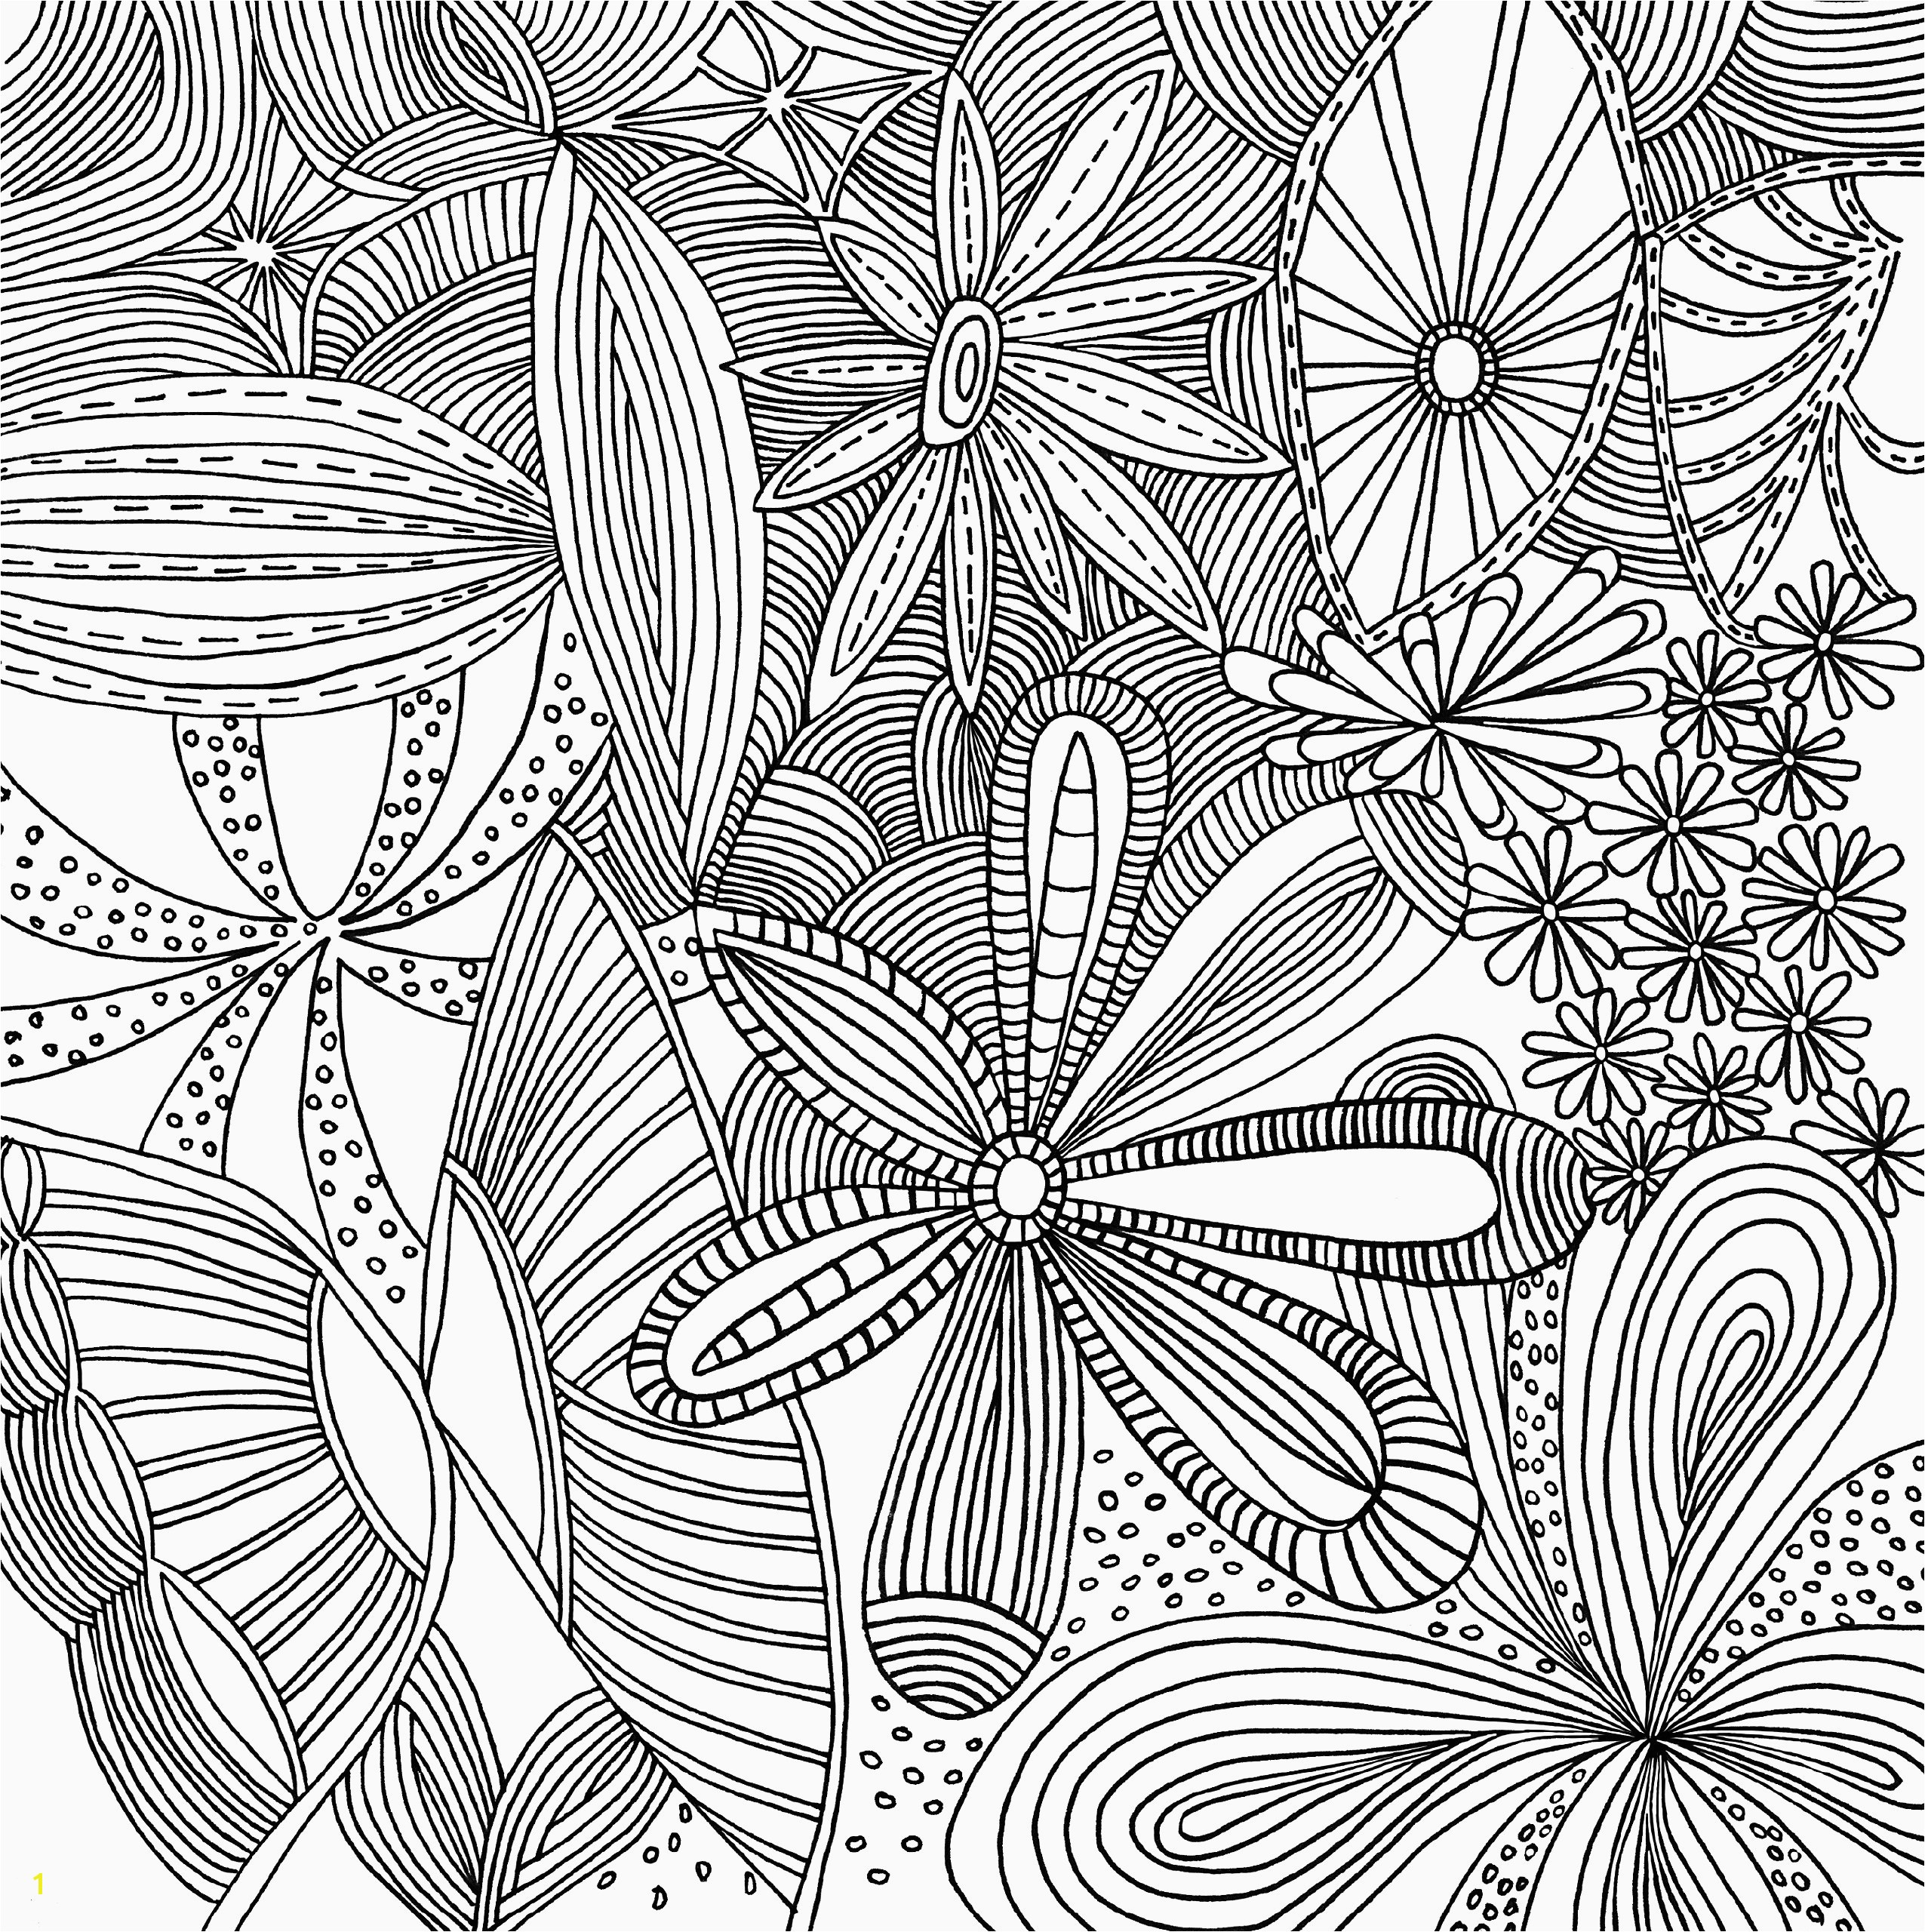 printable plex coloring pages best of printable plex coloring pages lovely printable fresh s s media of